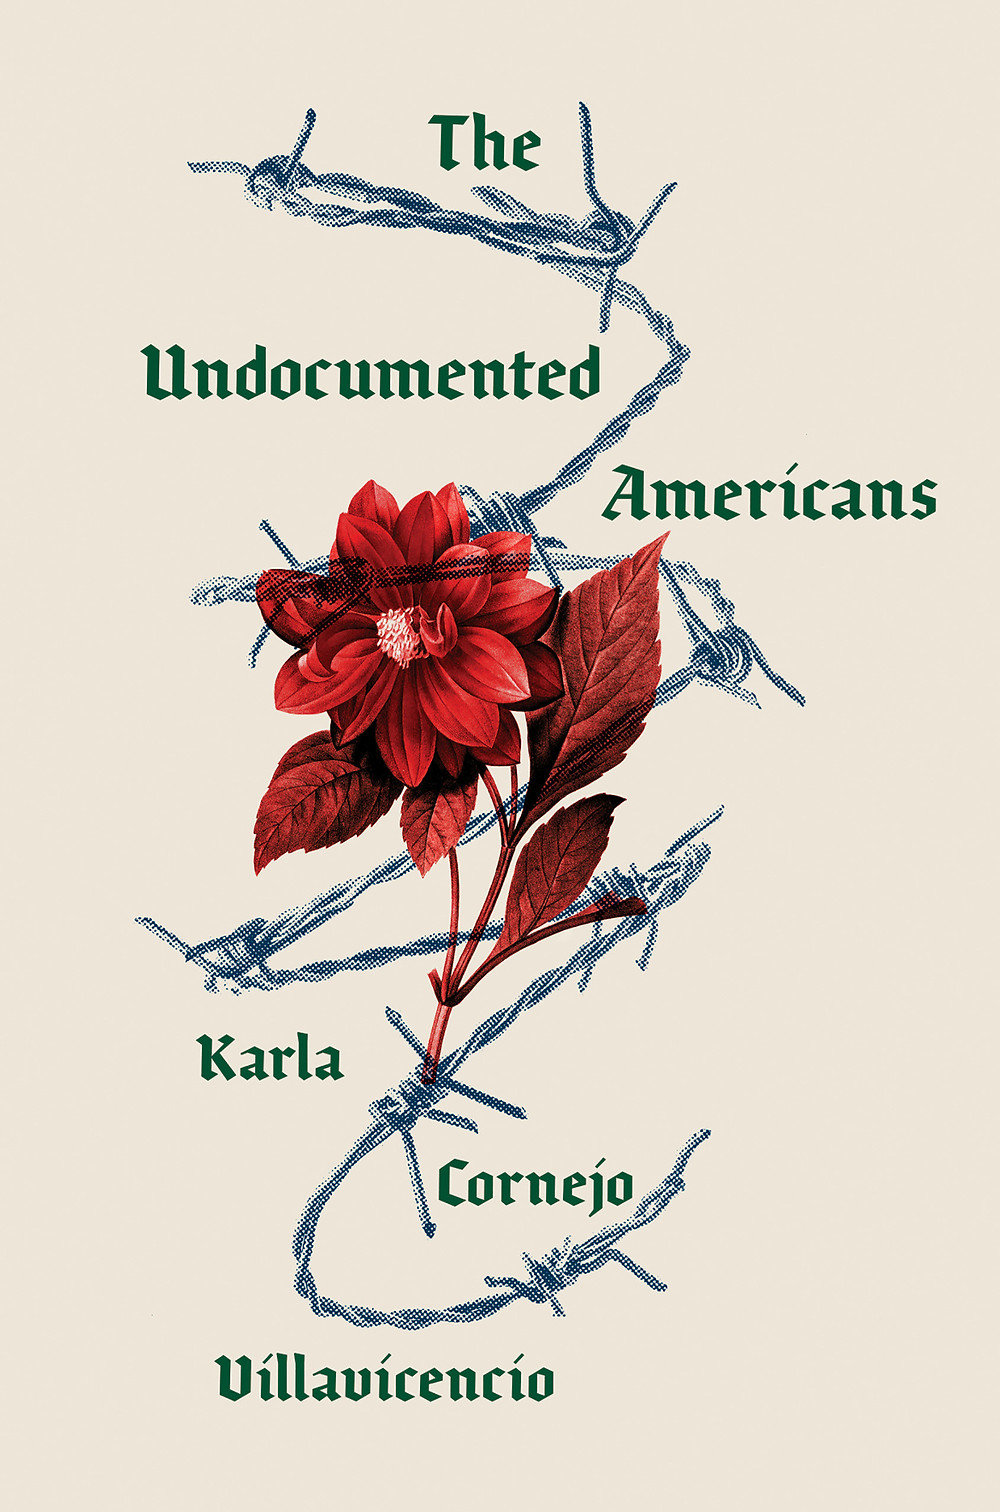 The Undocumented Americans by Karla Cornejo Villavicencio : the book slut book reviews thebookslut best floral book covers valentines day books